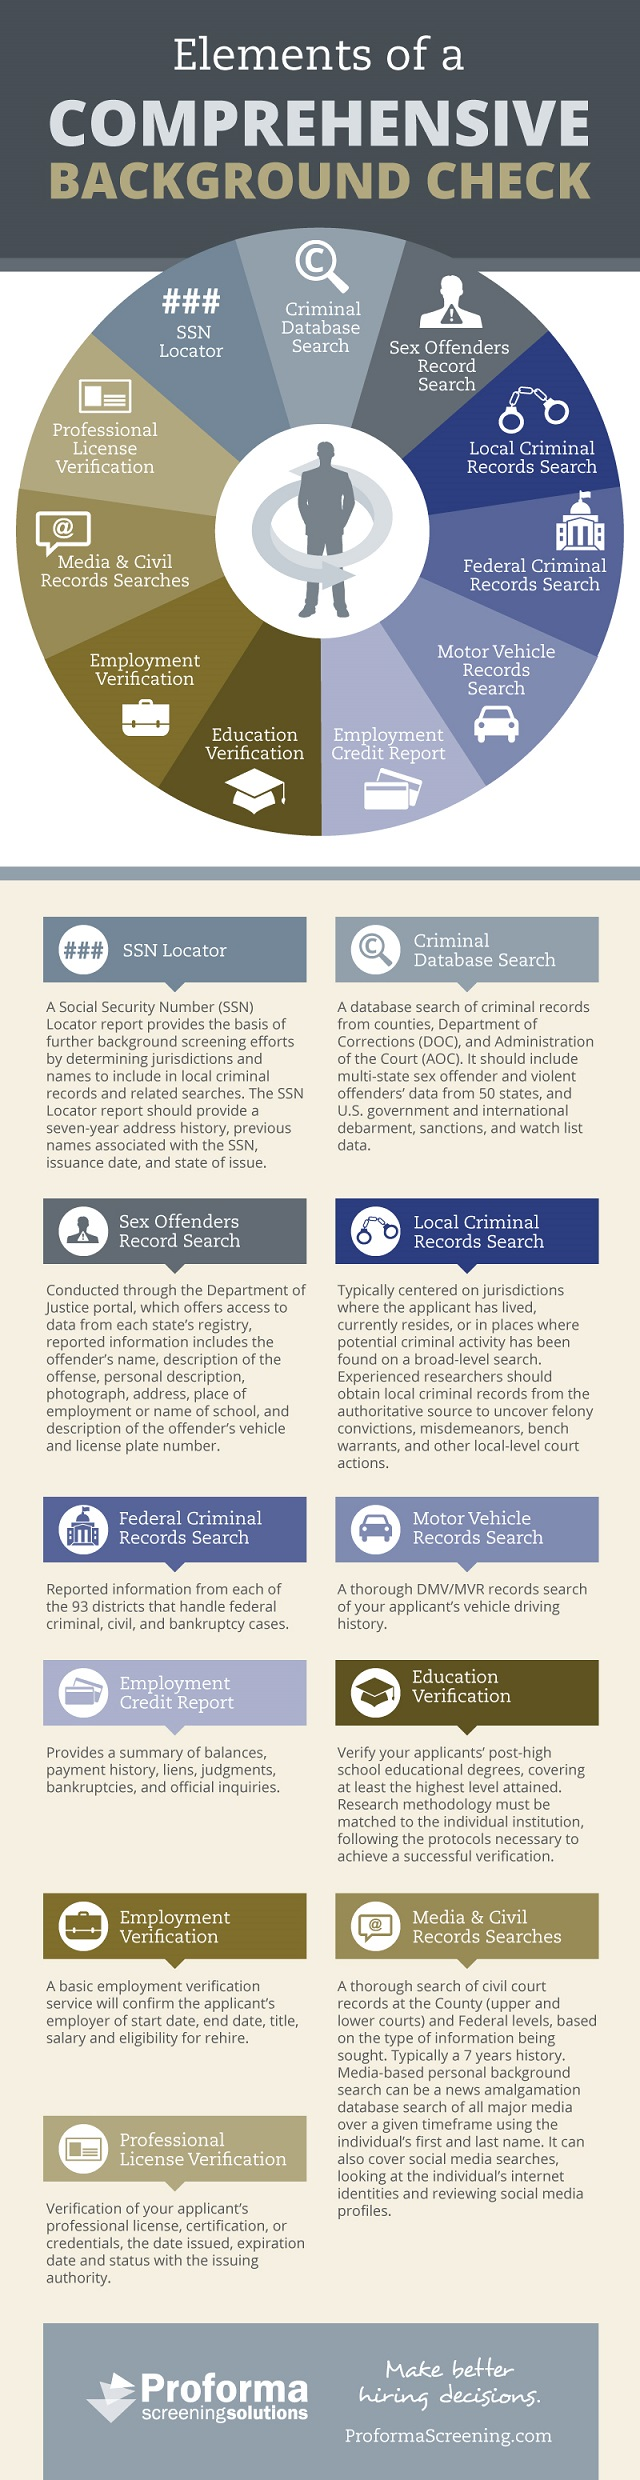 Elements Of A Comprehensive Background Check Infographic